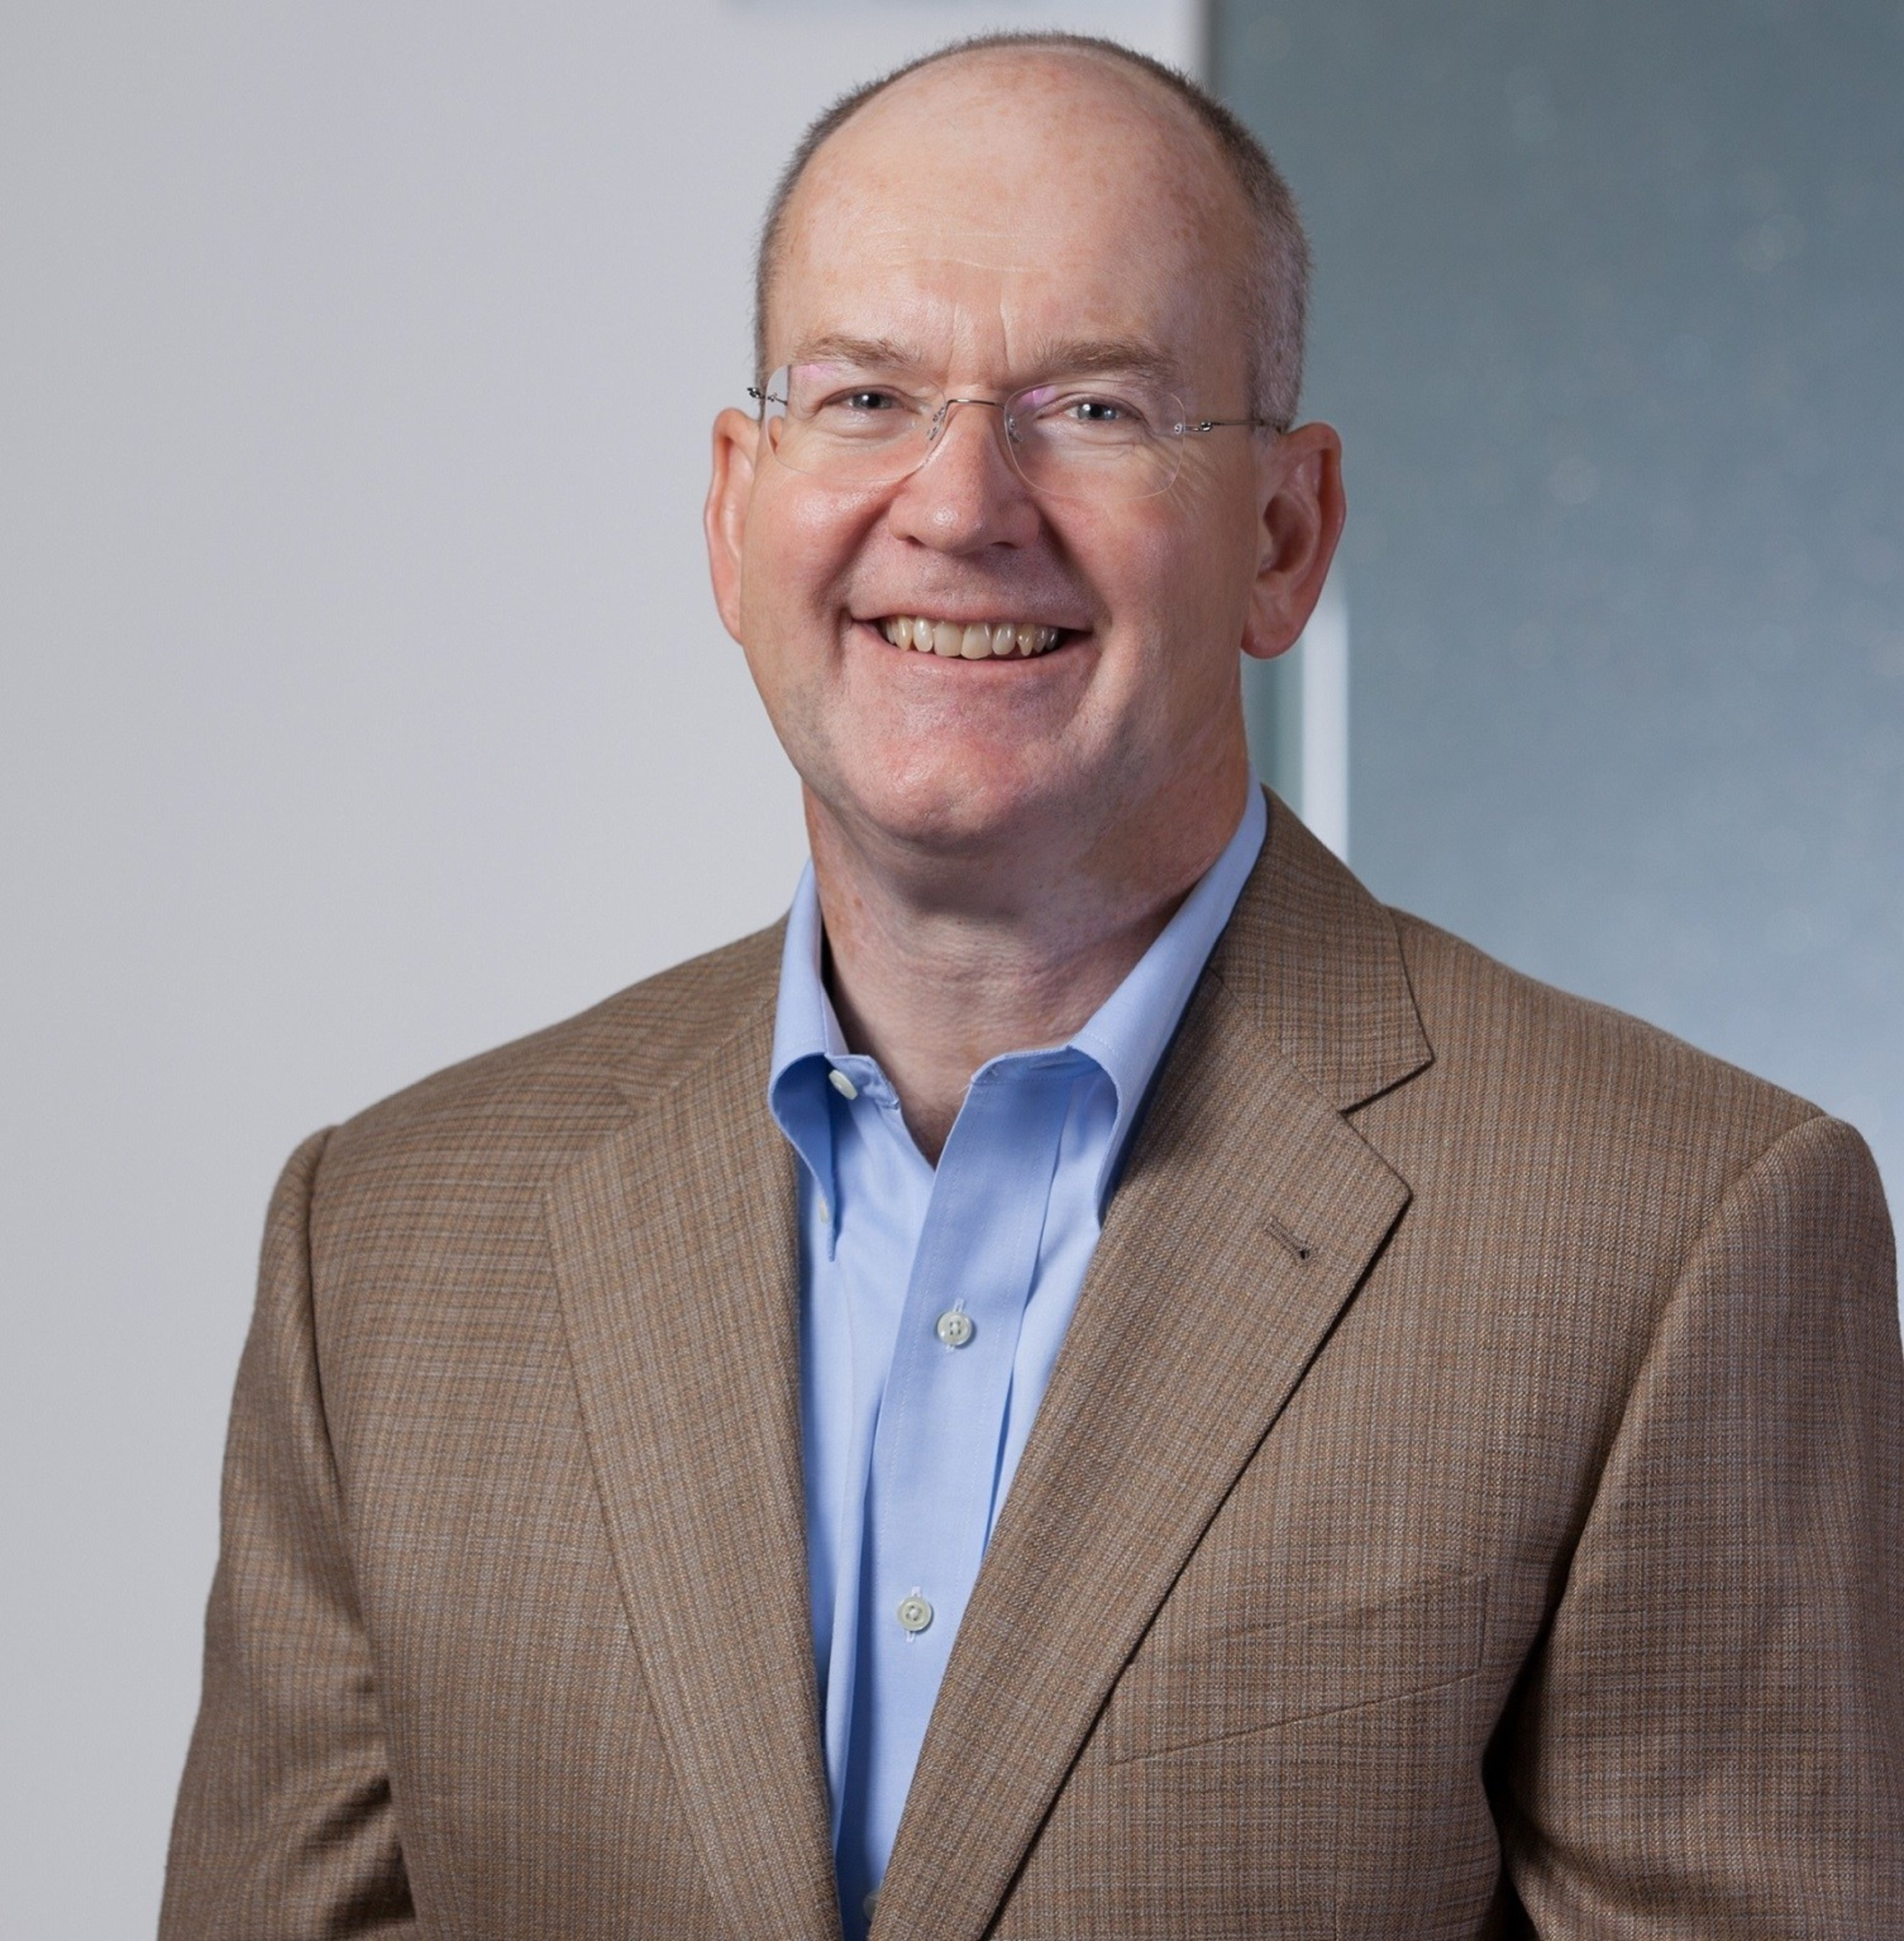 Dr. Don Rucker, a pioneer in medical information and technology, has joined Premise Health as chief medical officer.